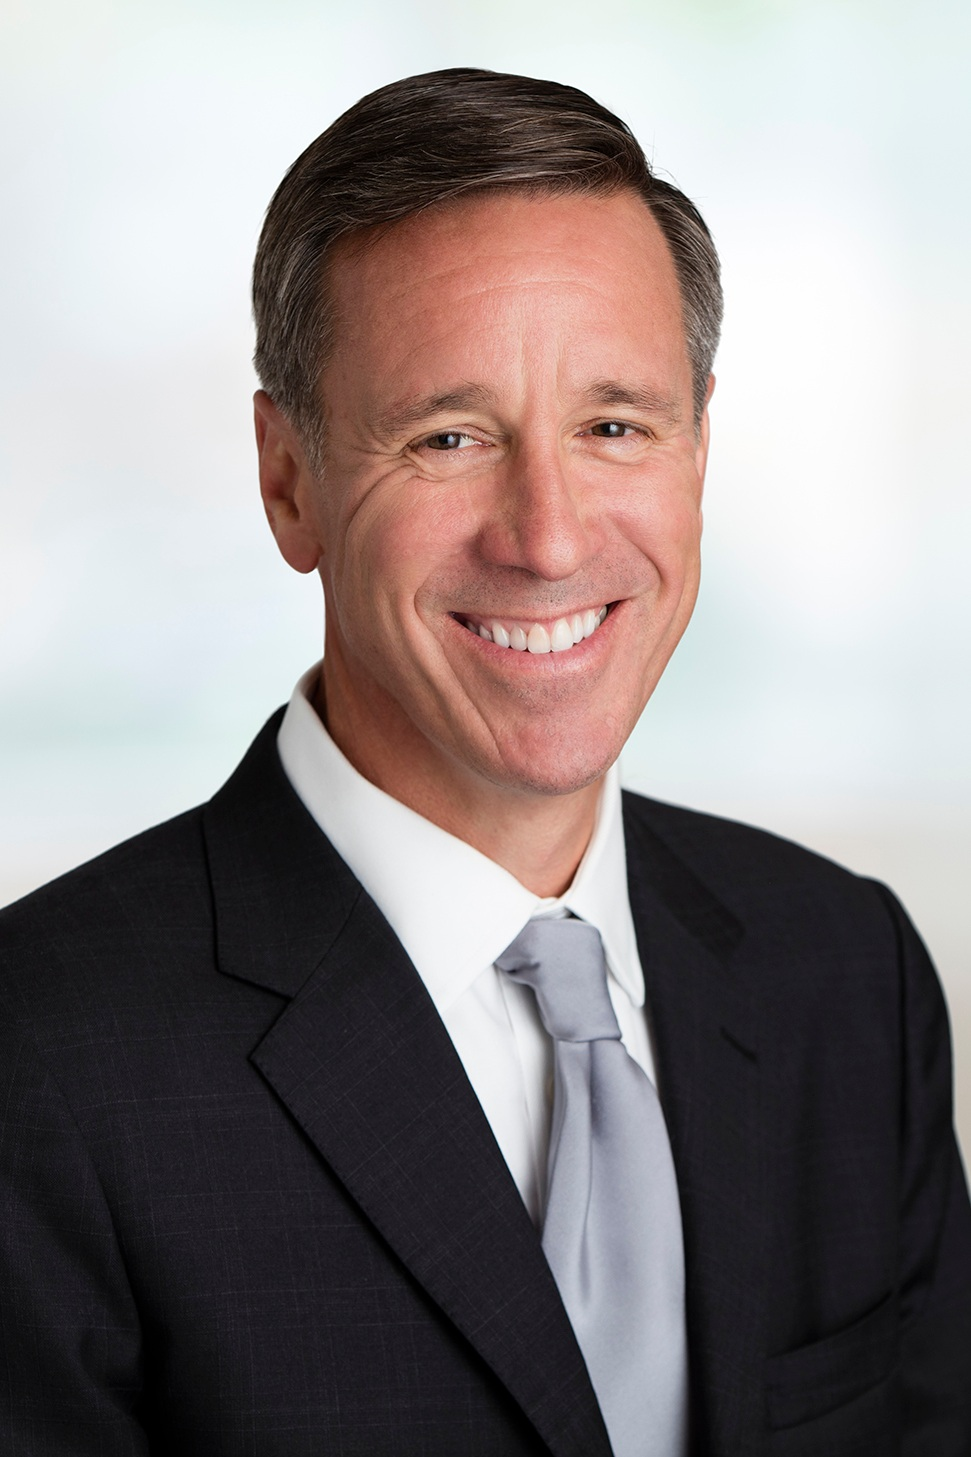 Arne M. Sorenson - President & Chief Executive Officer of Marriott International, Inc